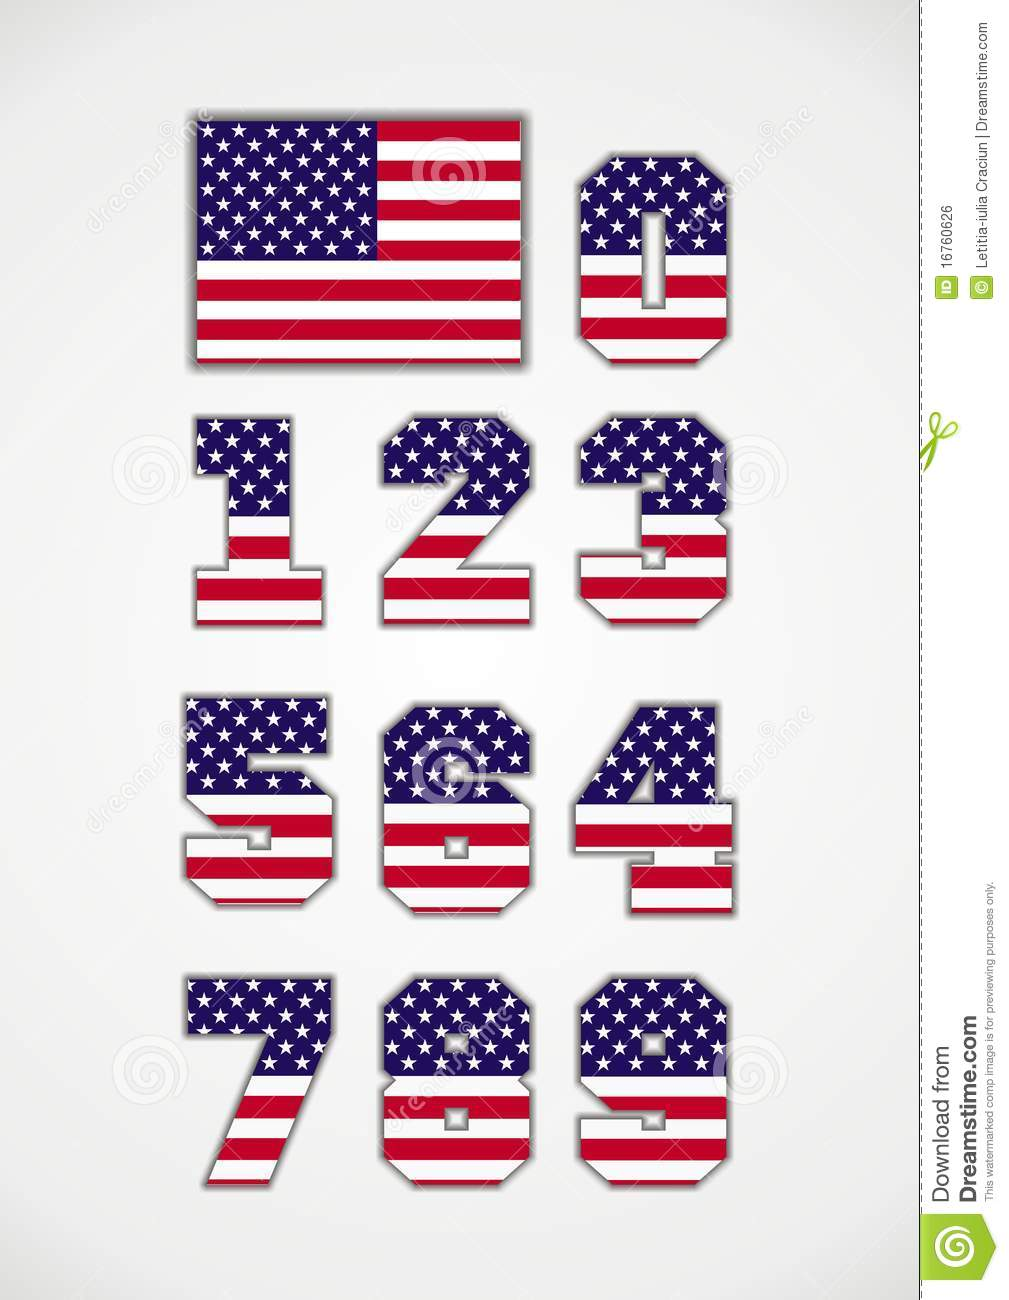 american flag and numbers royalty free stock image image route 66 clip art map route 66 clipart oklahoma